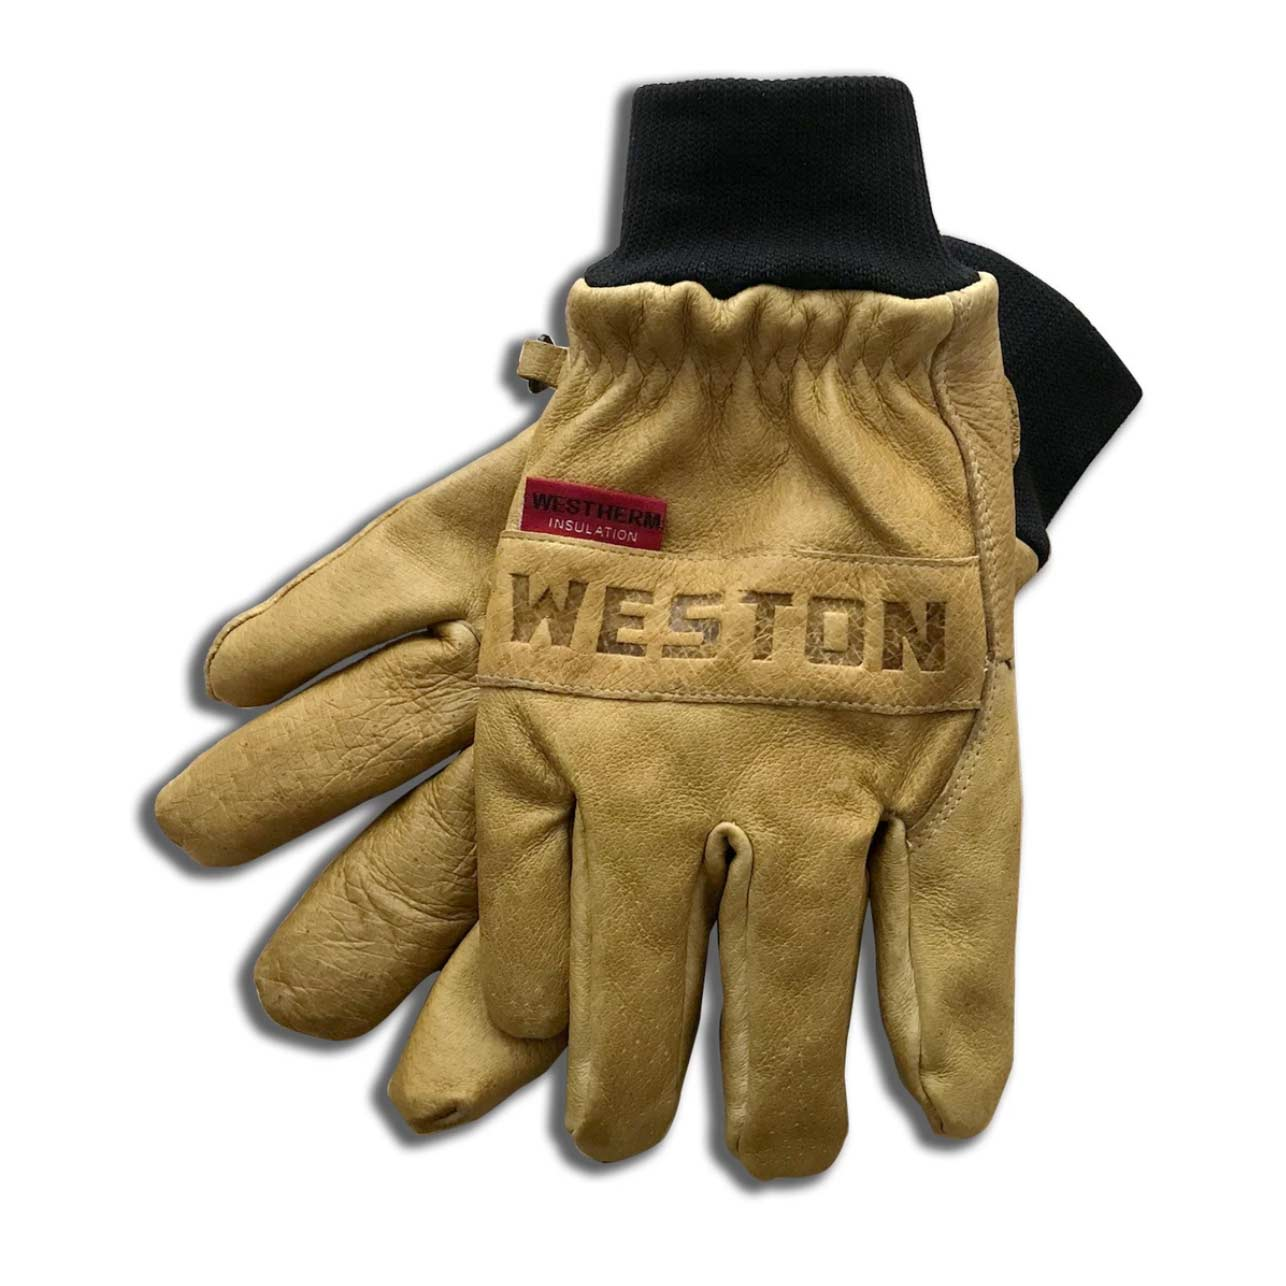 WESTON HERO HANDS FULL LEATHER GLOVE